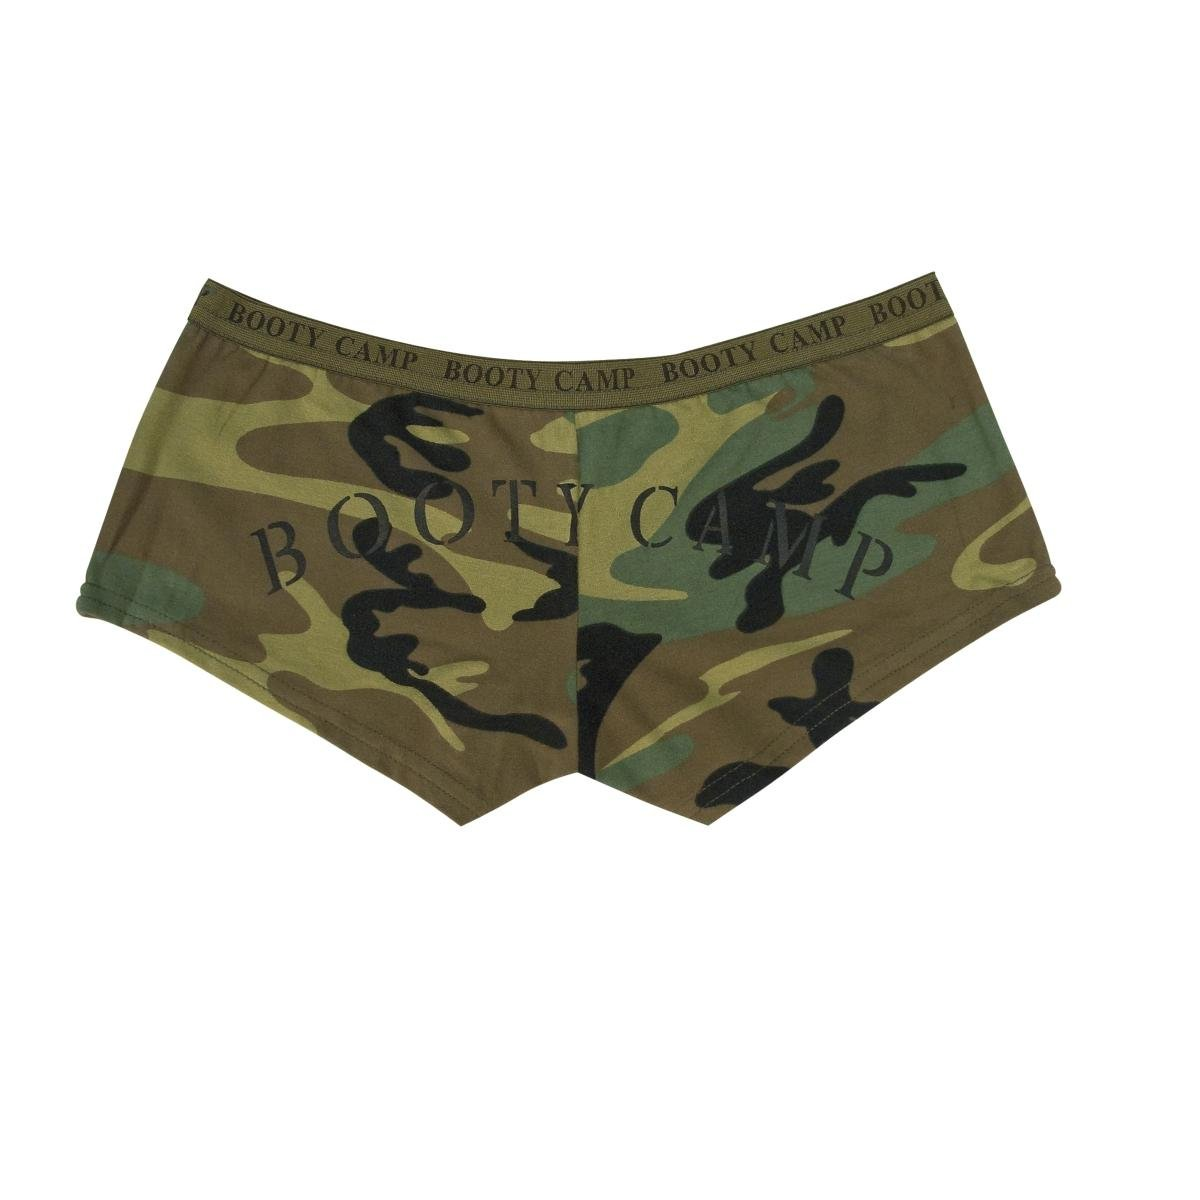 Rothco Women's Booty Camp Booty Shorts, Camo, Small